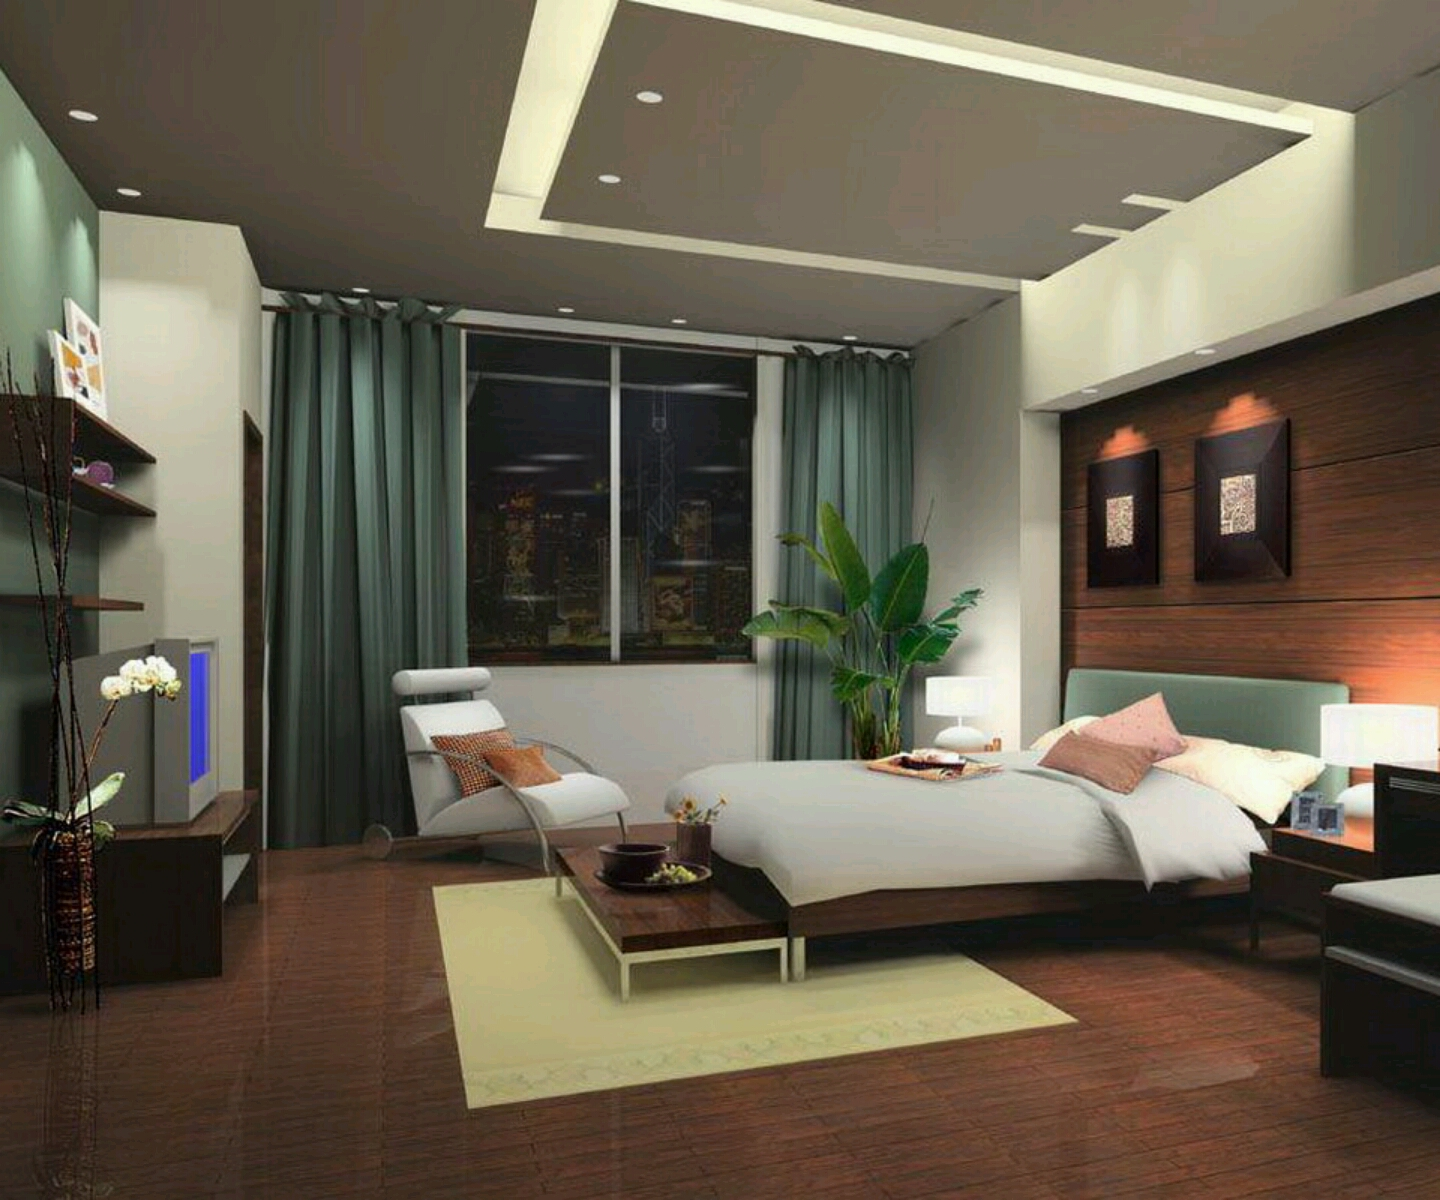 New home designs latest modern bedrooms designs best ideas - Latest bedroom design ...